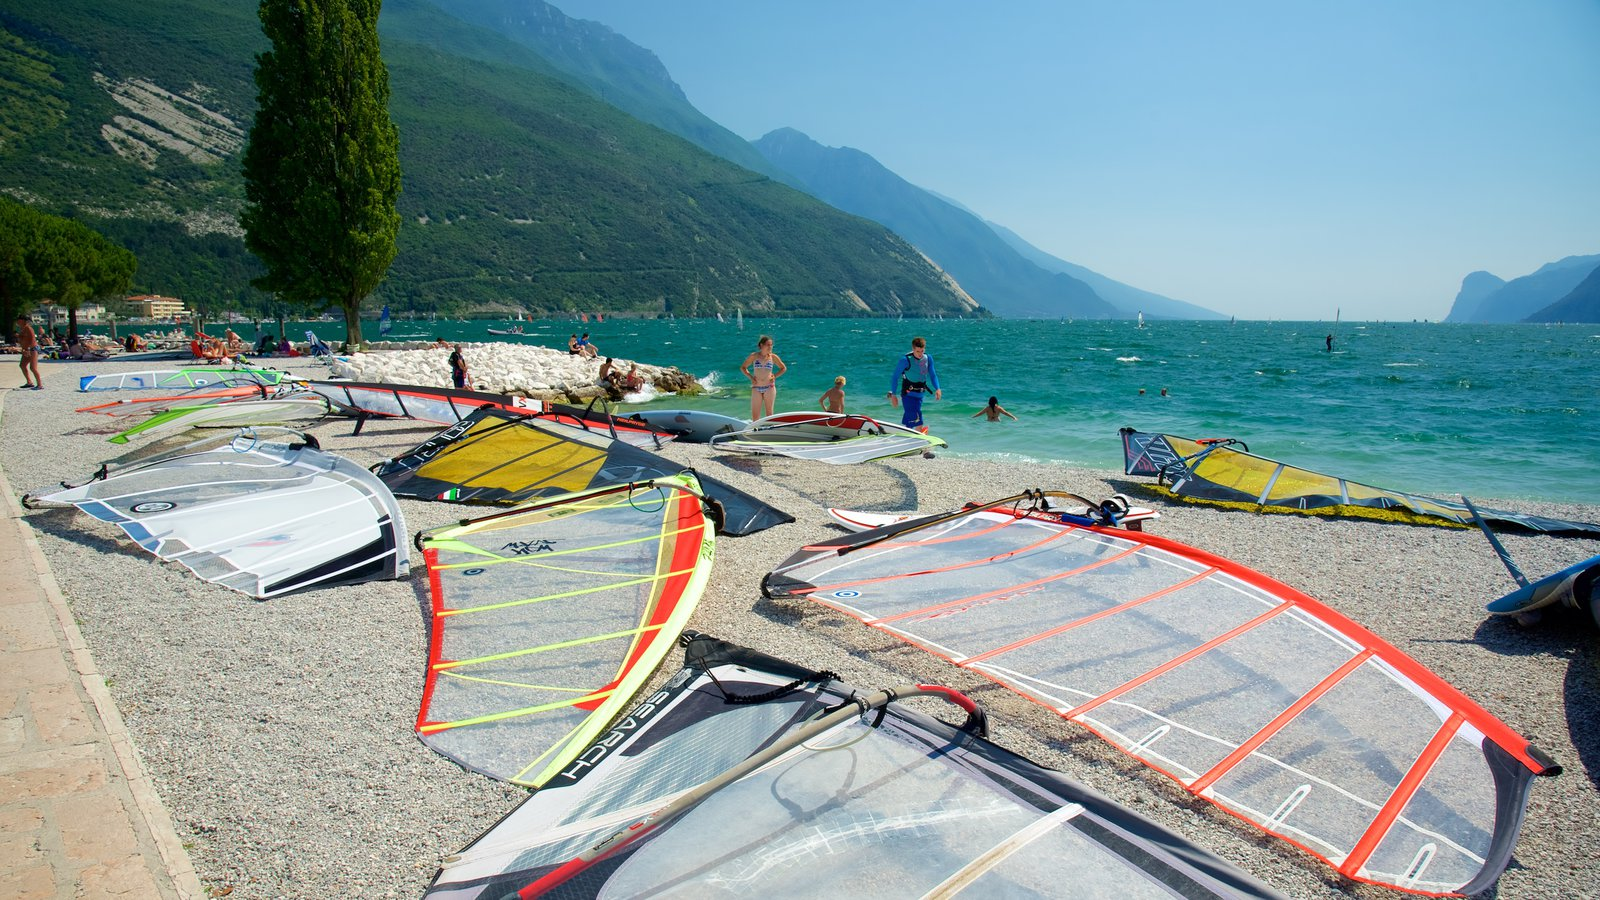 Nago-Torbole showing windsurfing and a pebble beach as well as a large group of people